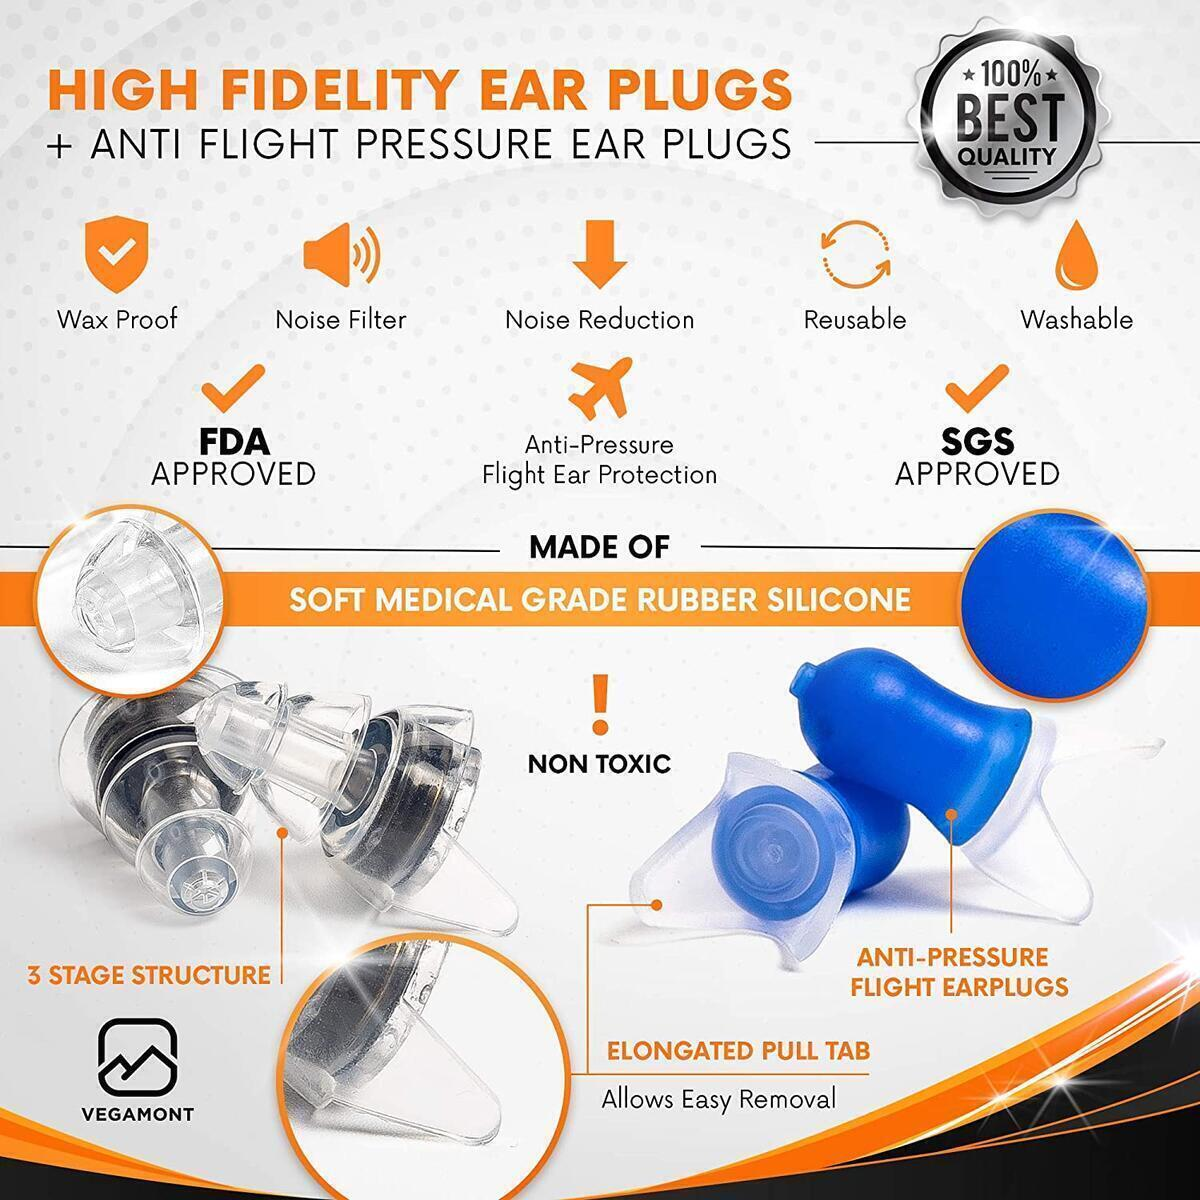 VEGAMONT High Fidelity Earplugs - Ear Protection That Filters and Reduce Unhealthy Noise (Sleeping, Shooting, Airplane, Motorcycling, Industrial, Mowing, Concerts, Musicians, DJ)